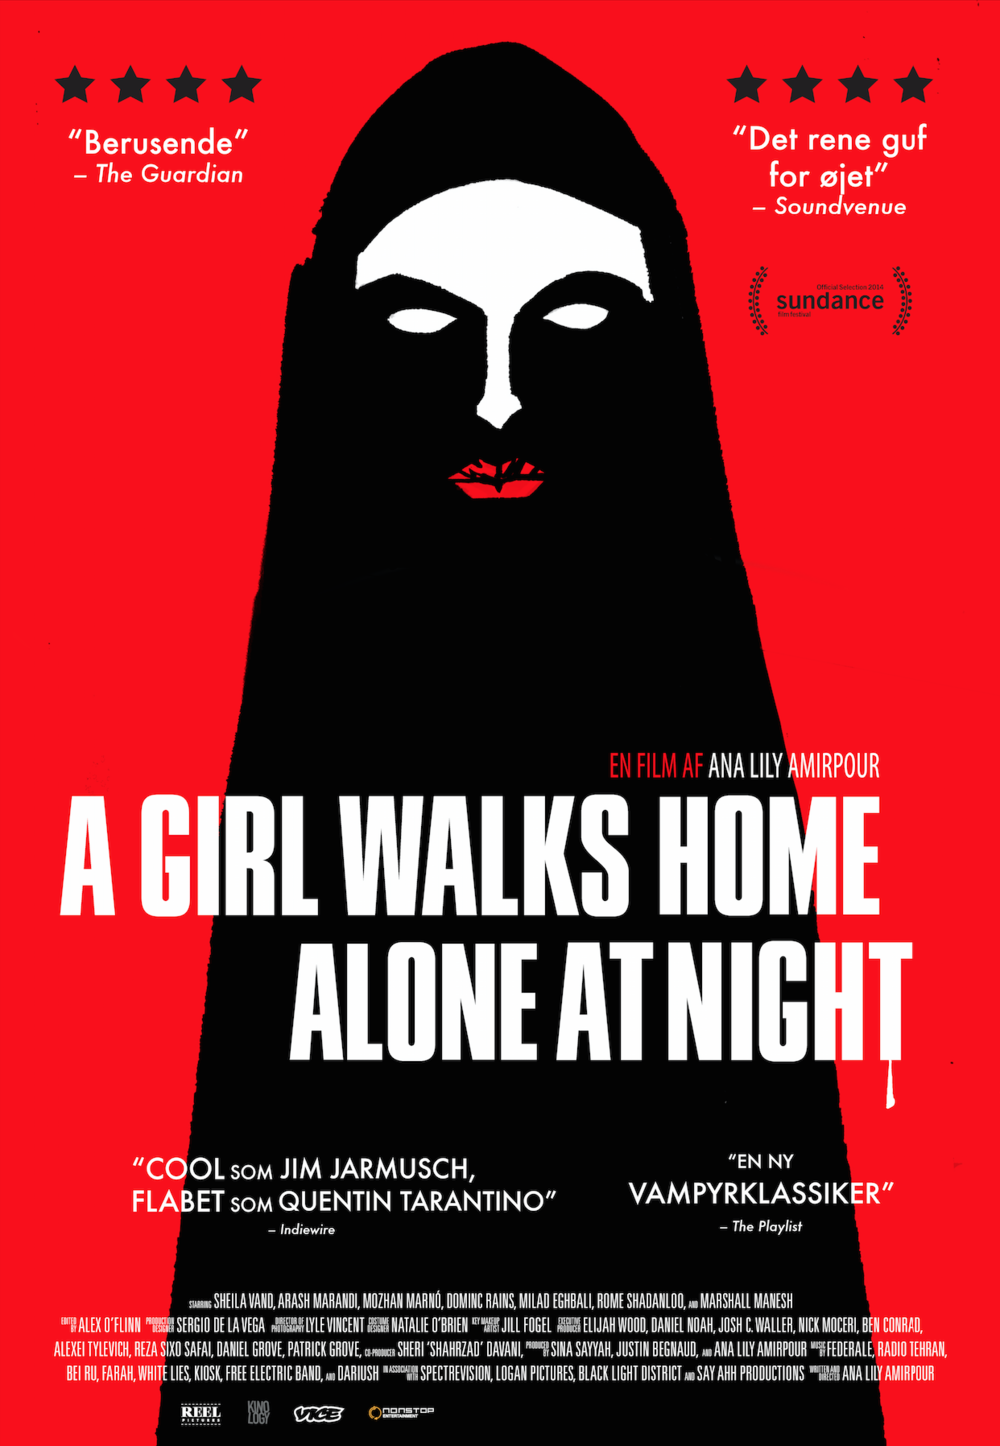 Standard cinema poster -  A Girl Walks Home Alone